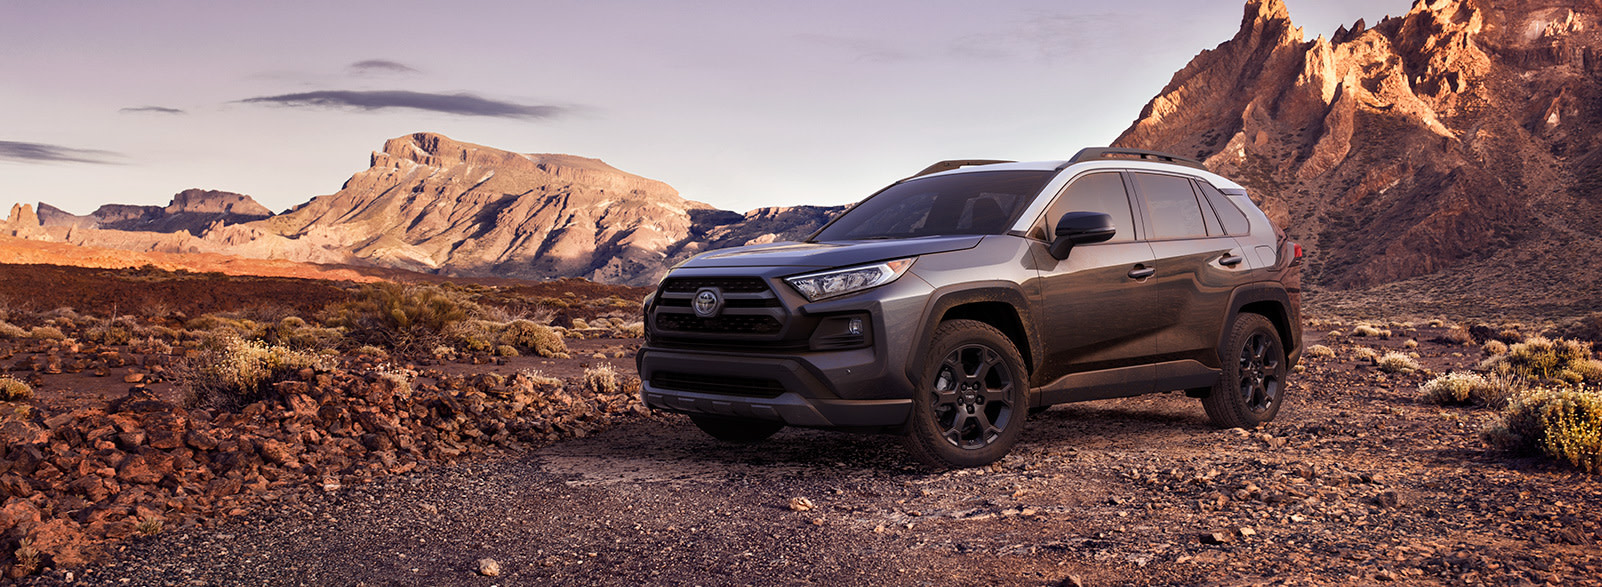 Compare the 2020 Toyota RAV4 vs. the Honda CR-V crossovers at Tri County Toyota | grey 2020 rav4 parked in a mountain terrian